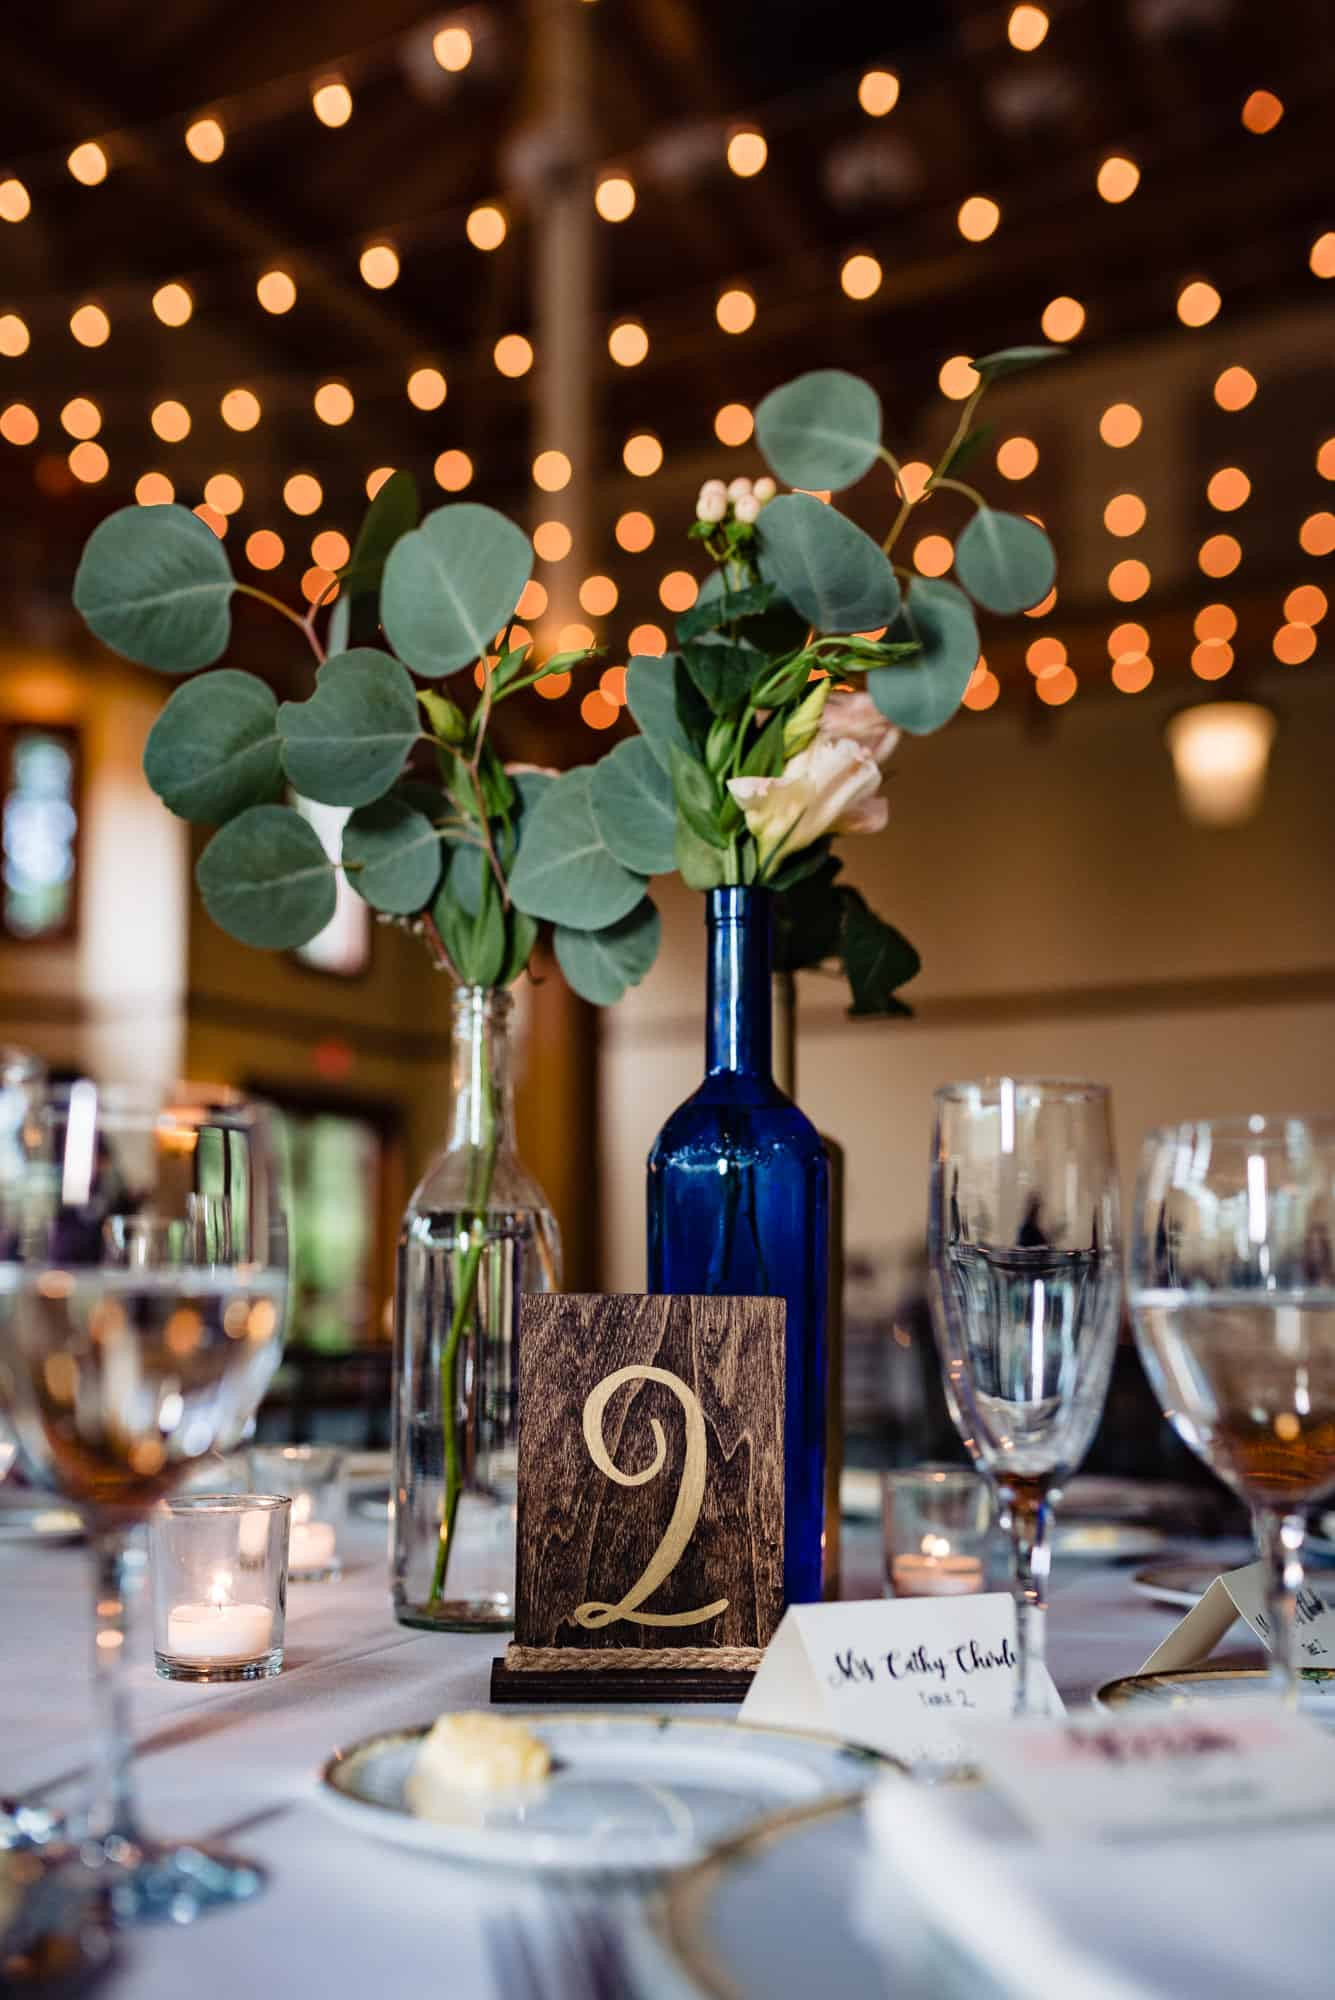 wedding accessories, centerpieces and table number with glasses of wine and champagne